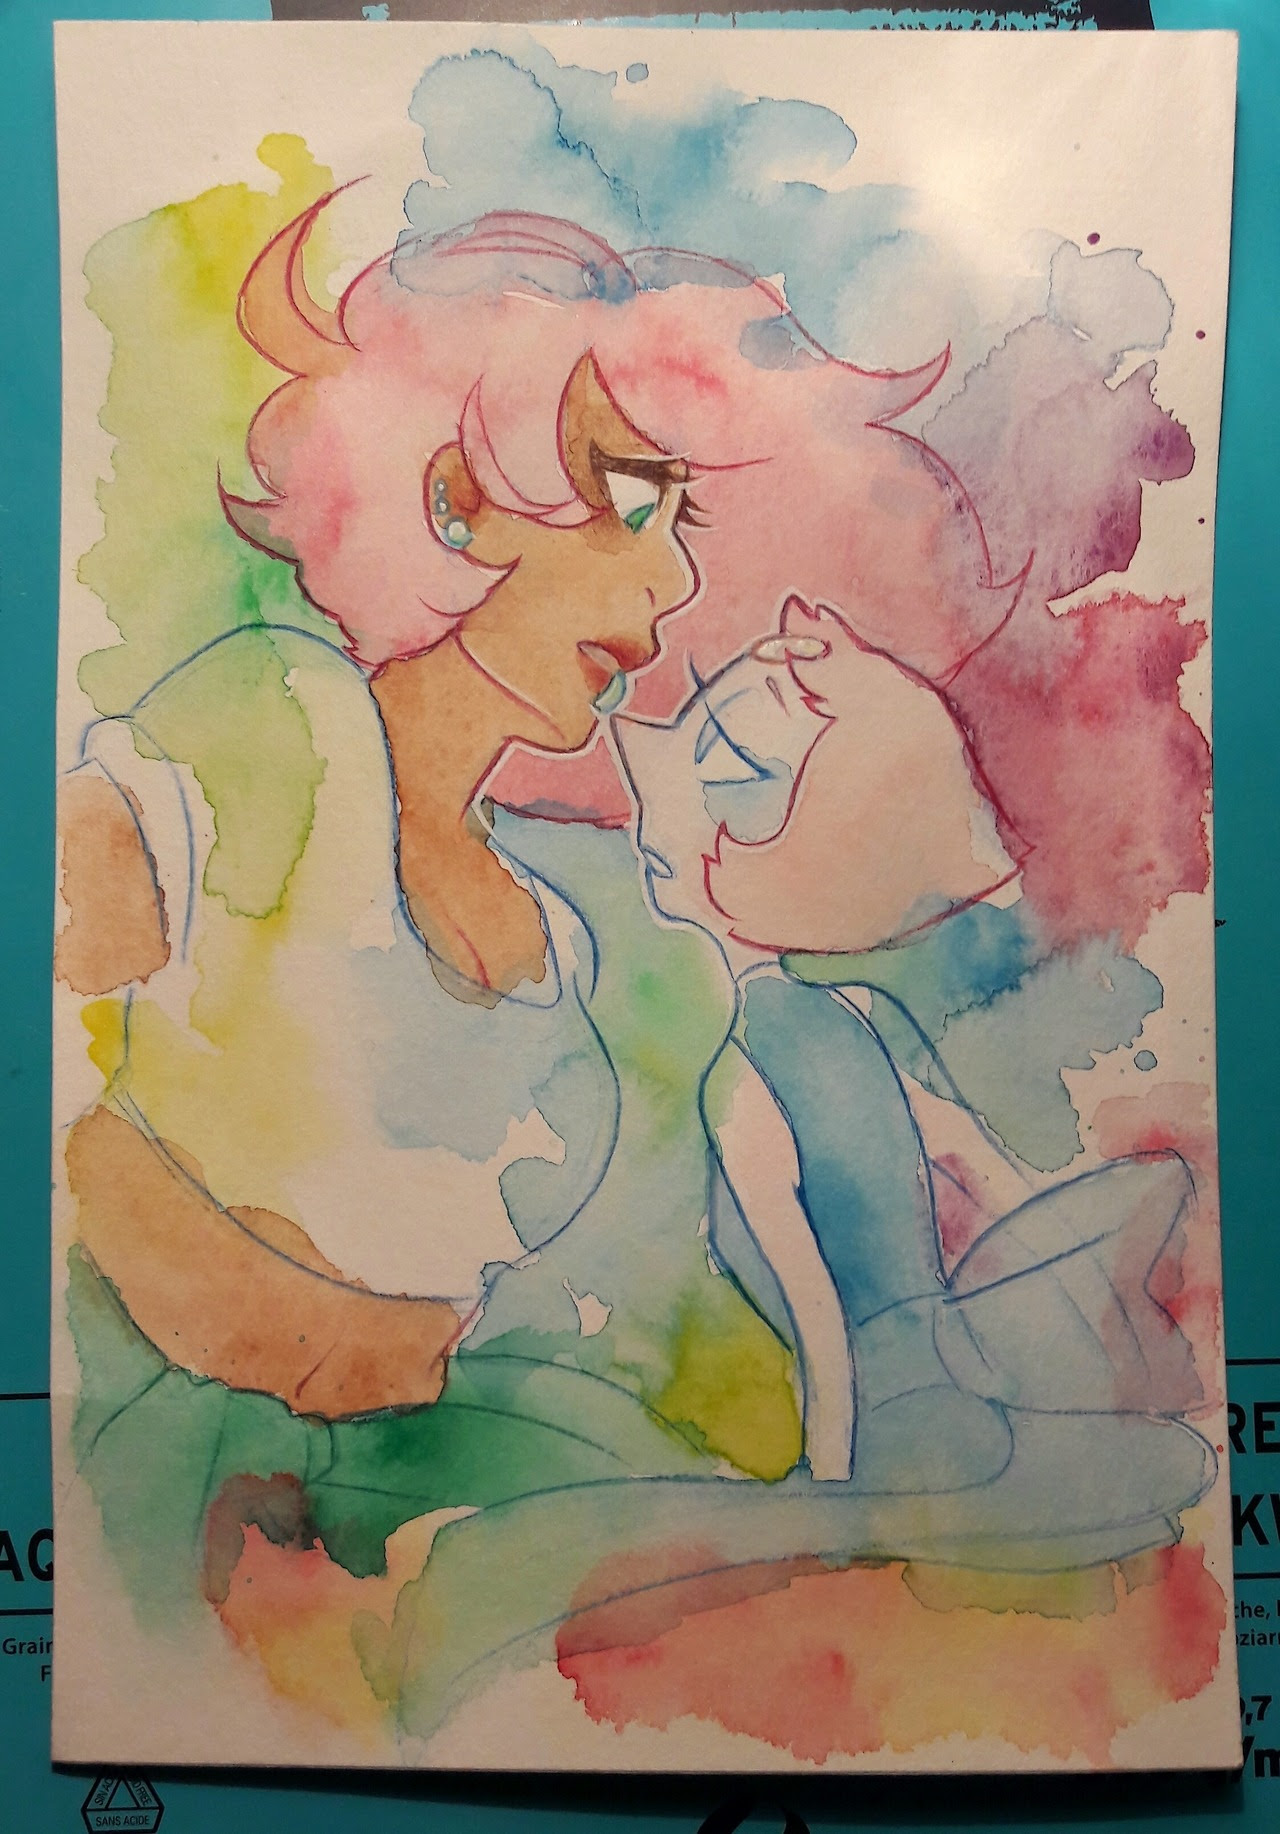 And here's the WiP for last night's watercolor ! I'm so glad I managed to make something messy and that it actually satisfies me.